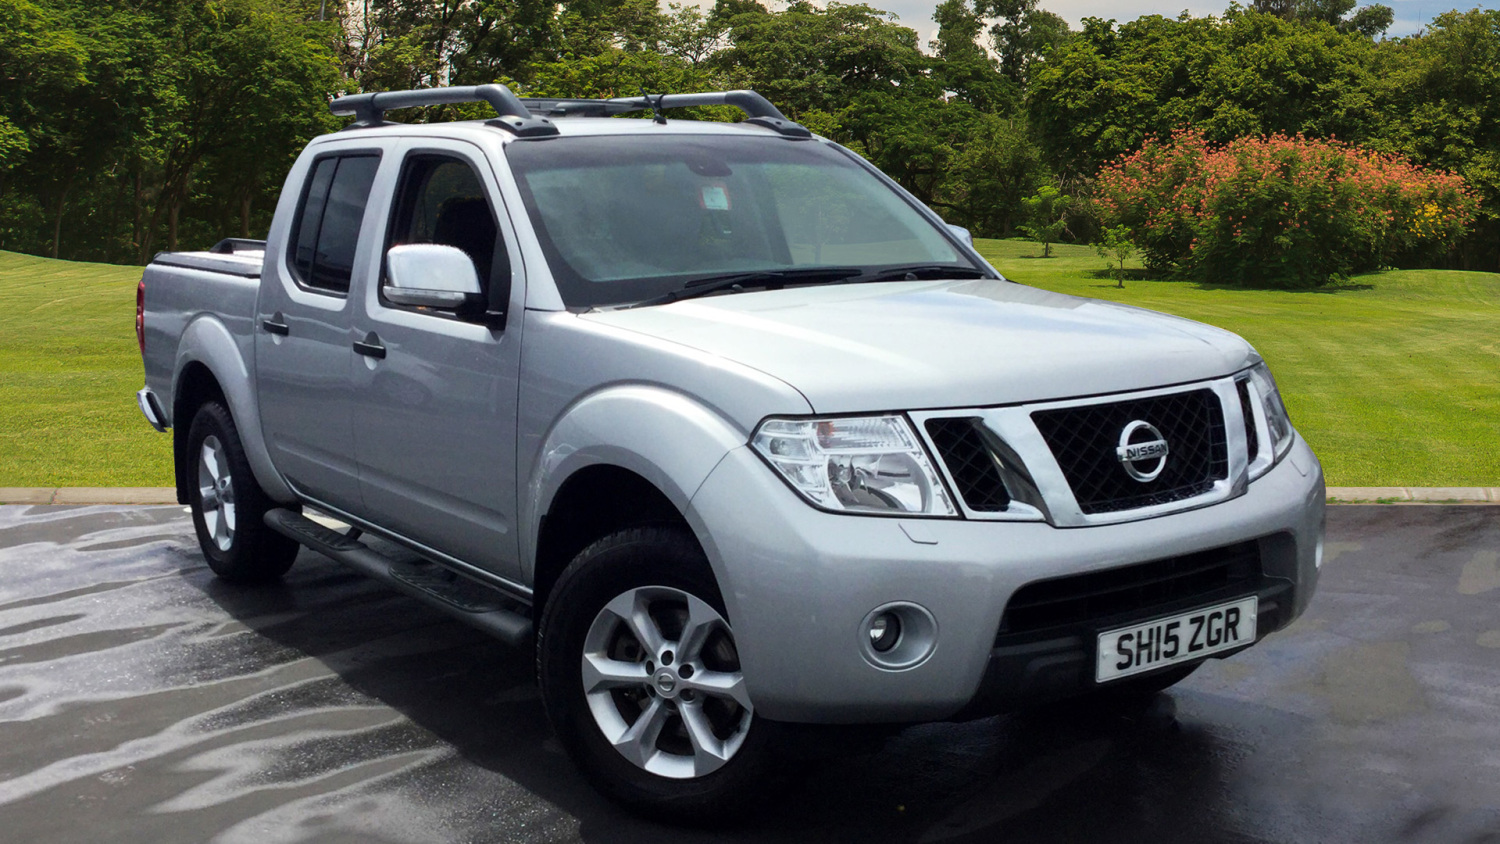 used nissan navara diesel double cab pick up tekna 2 5dci 190 4wd auto for sale newcastle infiniti. Black Bedroom Furniture Sets. Home Design Ideas